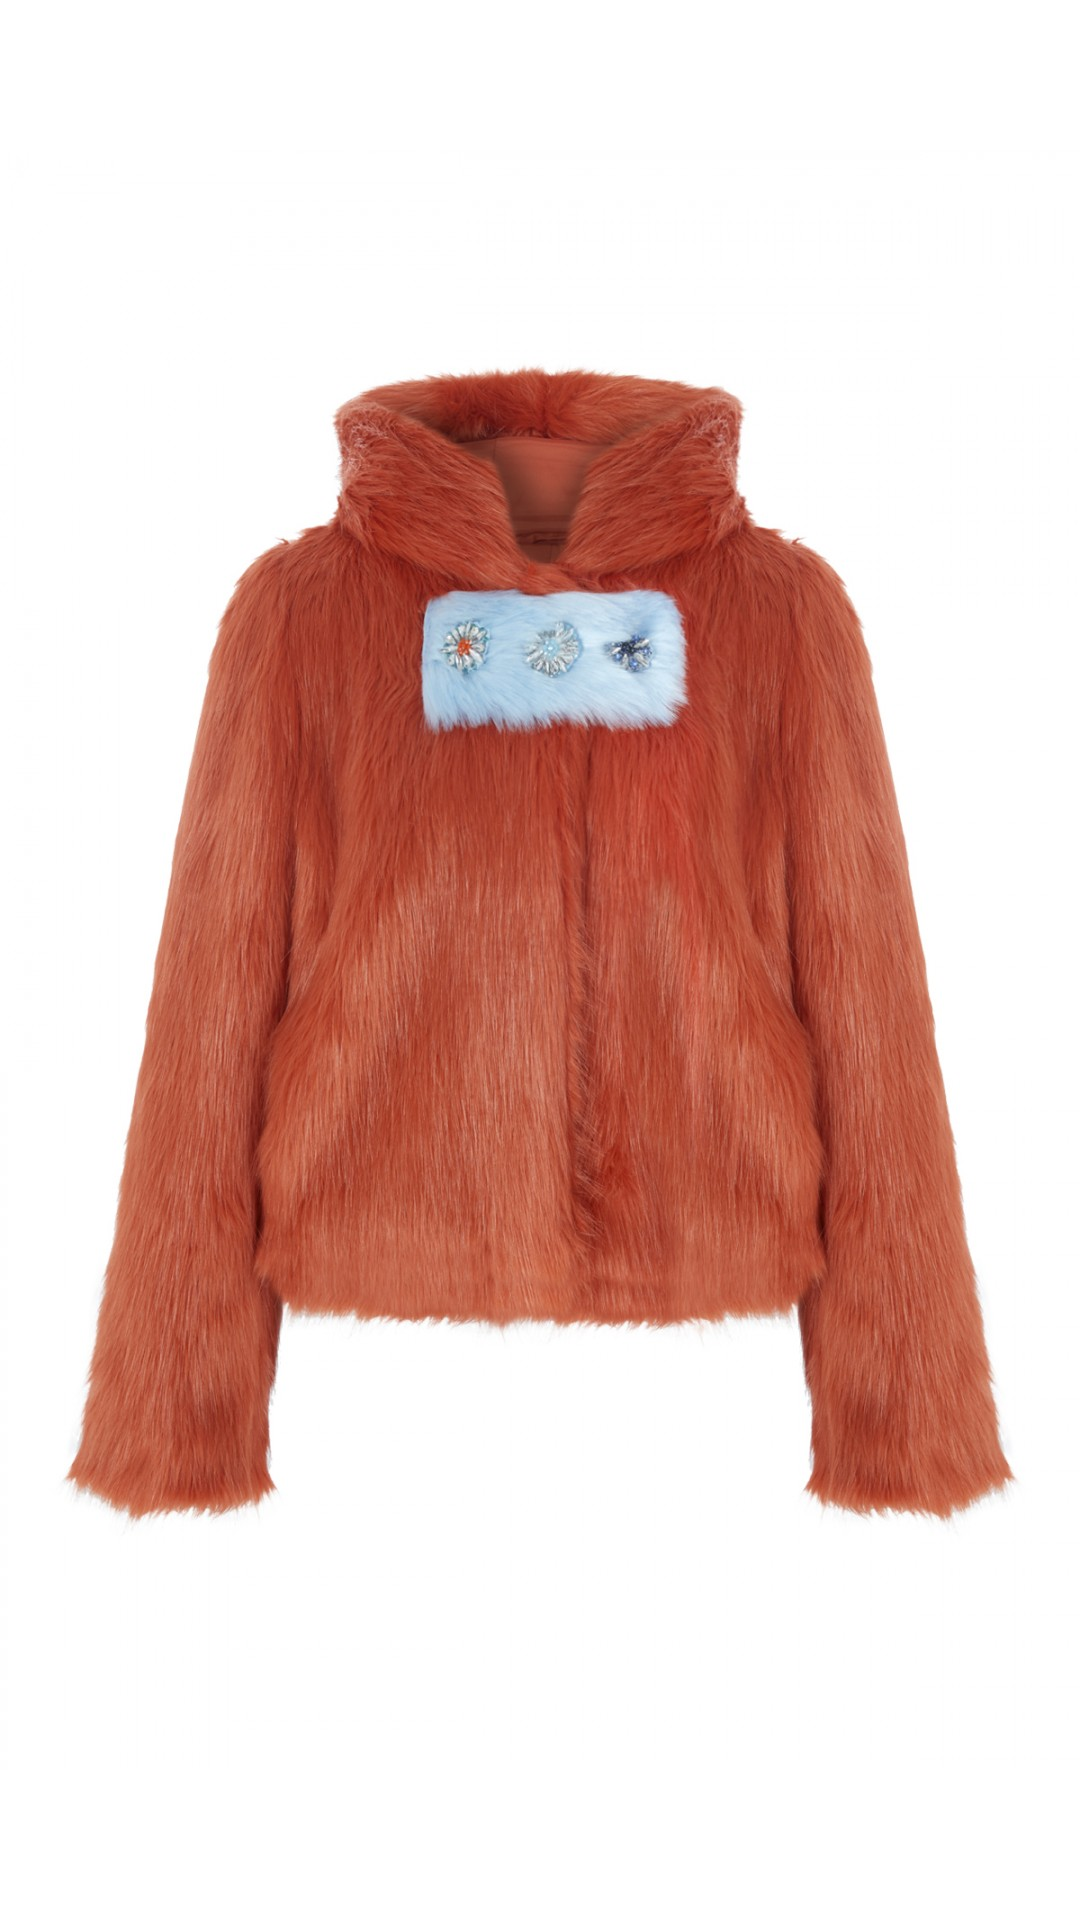 ORANGE FAUX FUR WITH EMBROIDERY